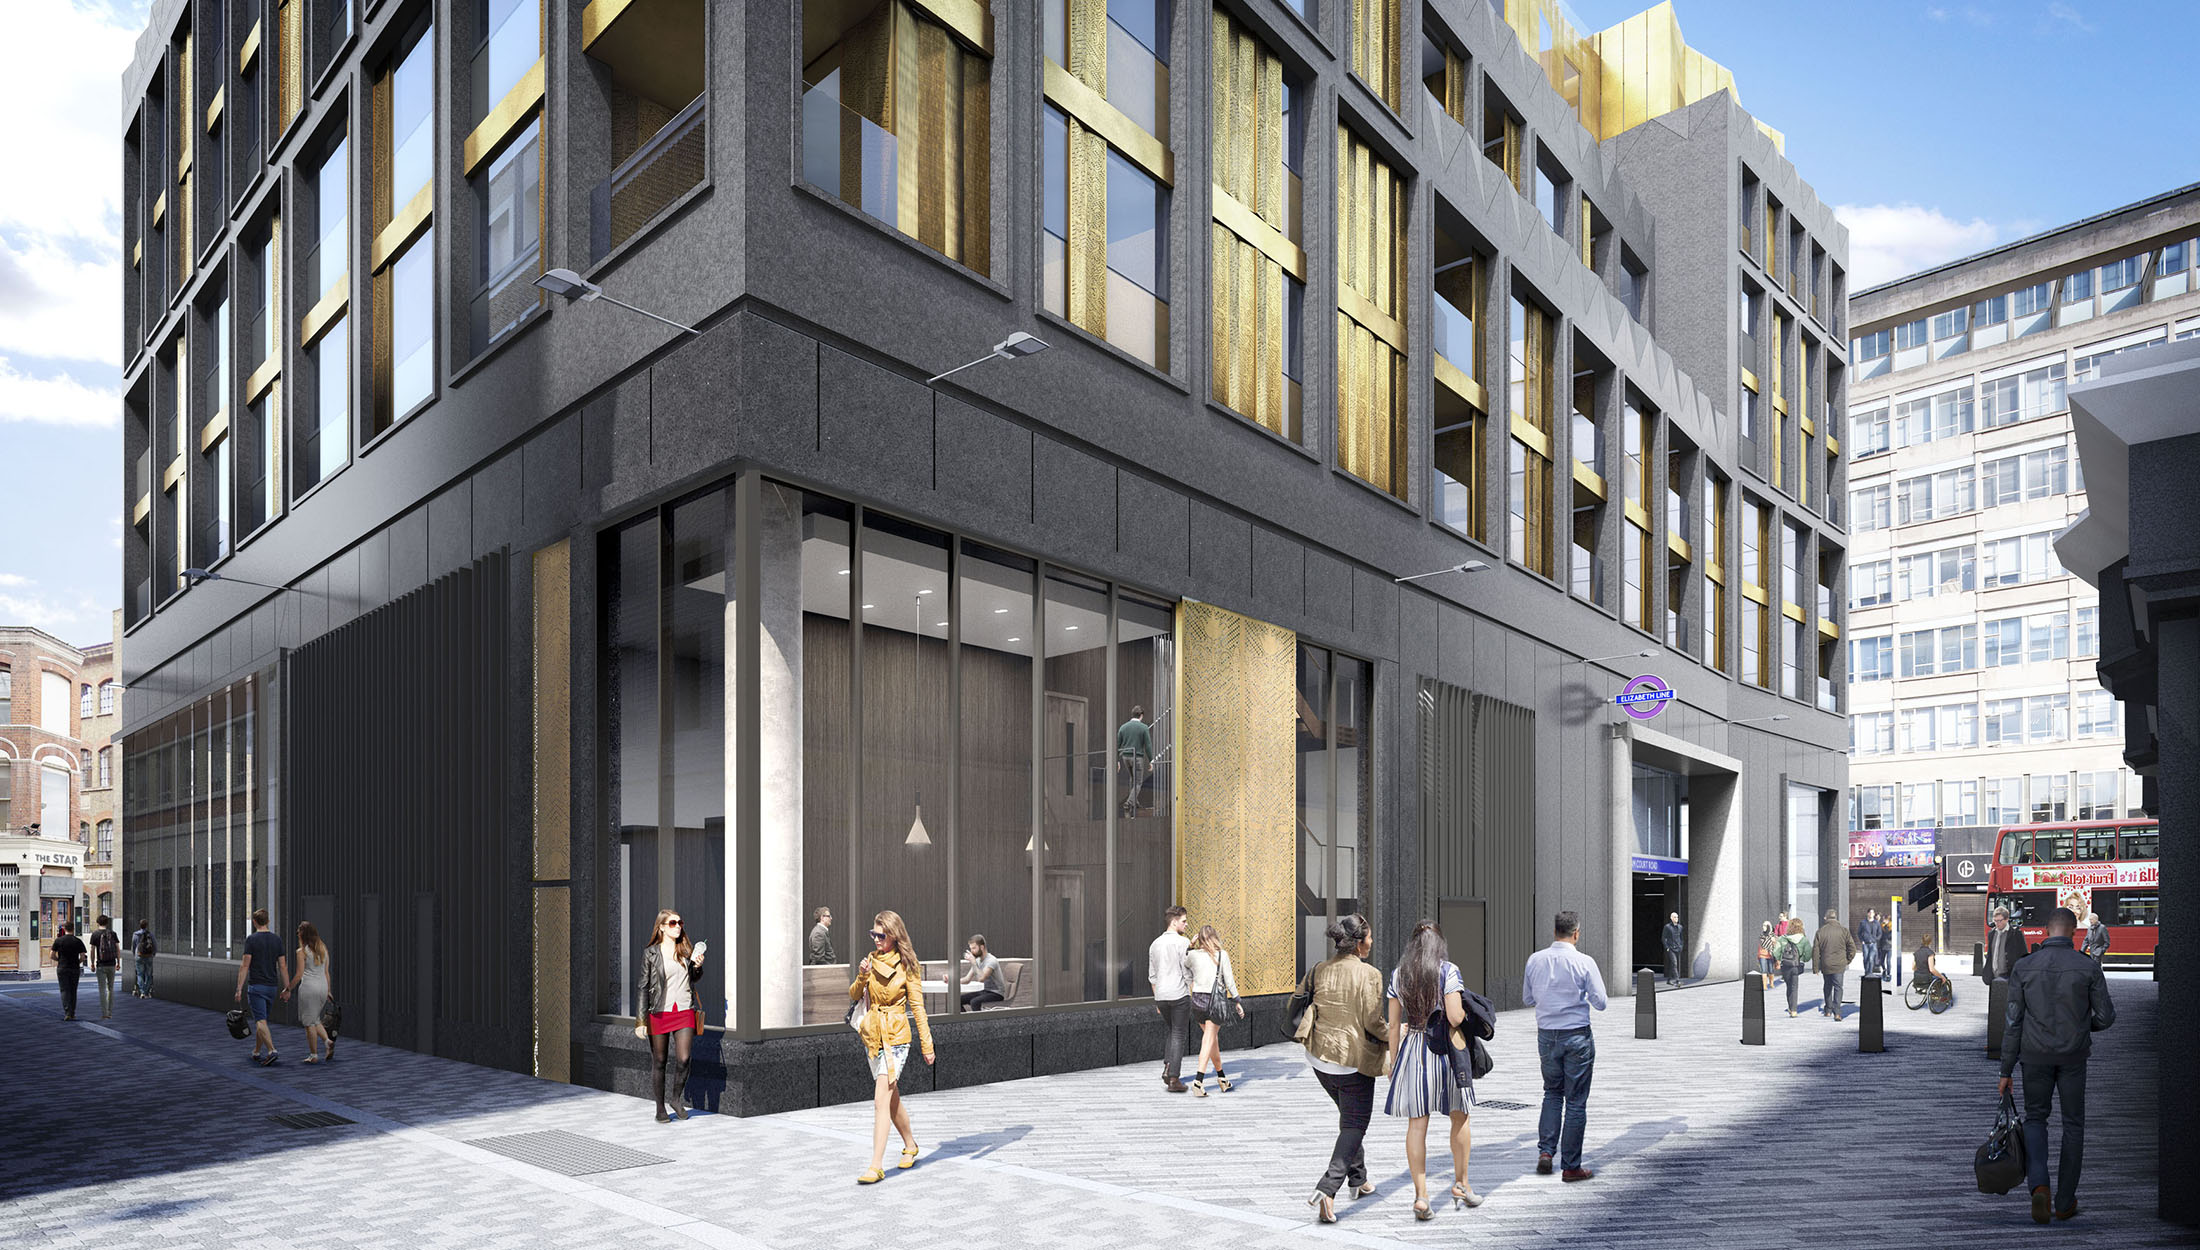 TCRW Soho exterior; computer generated image intended for illustrative purposes only, ©Galliard Homes.